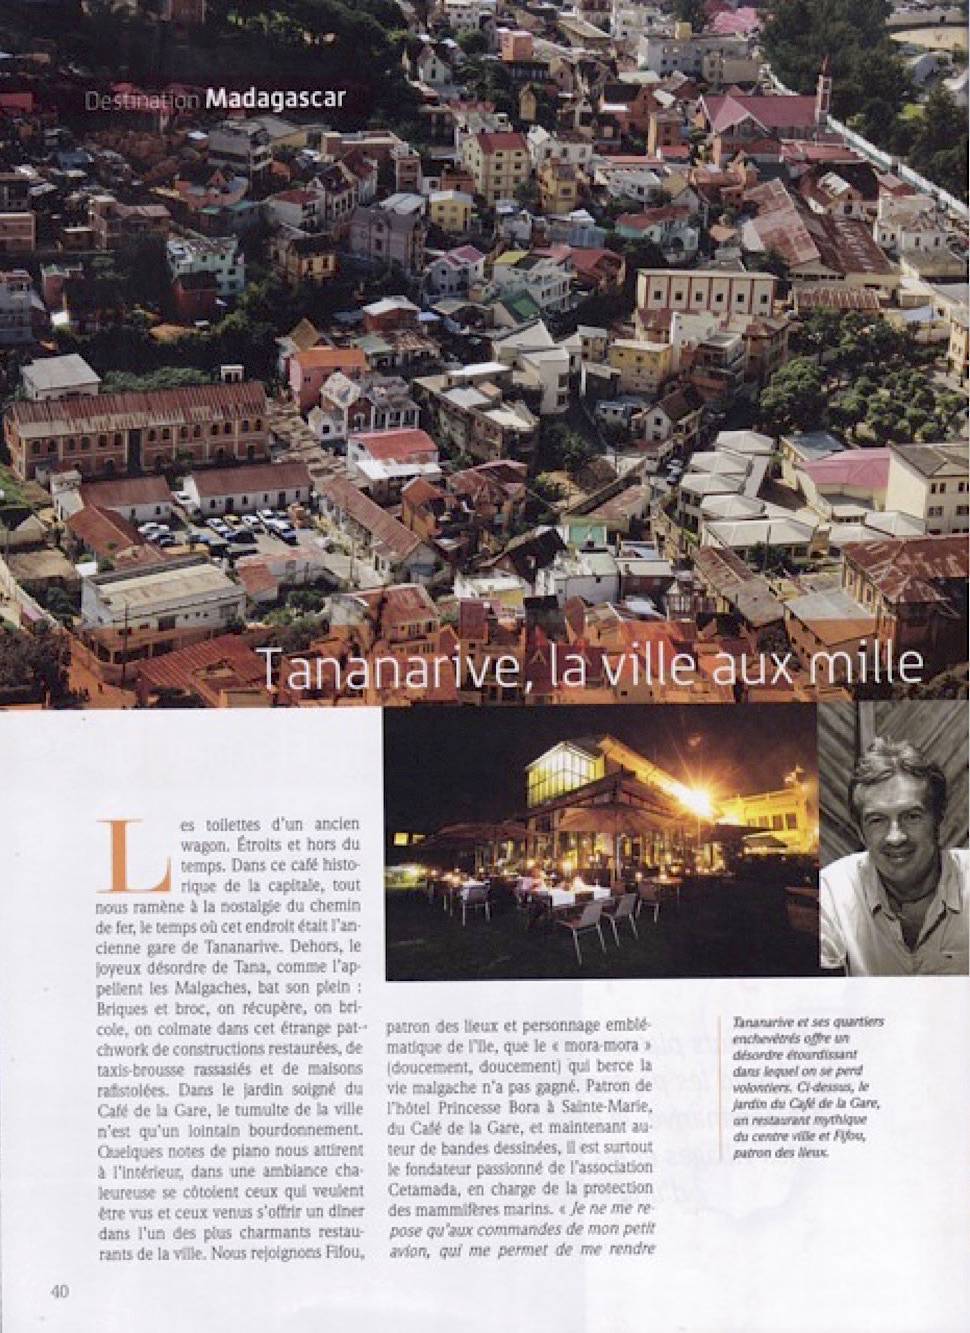 Ebook sur Madagascar